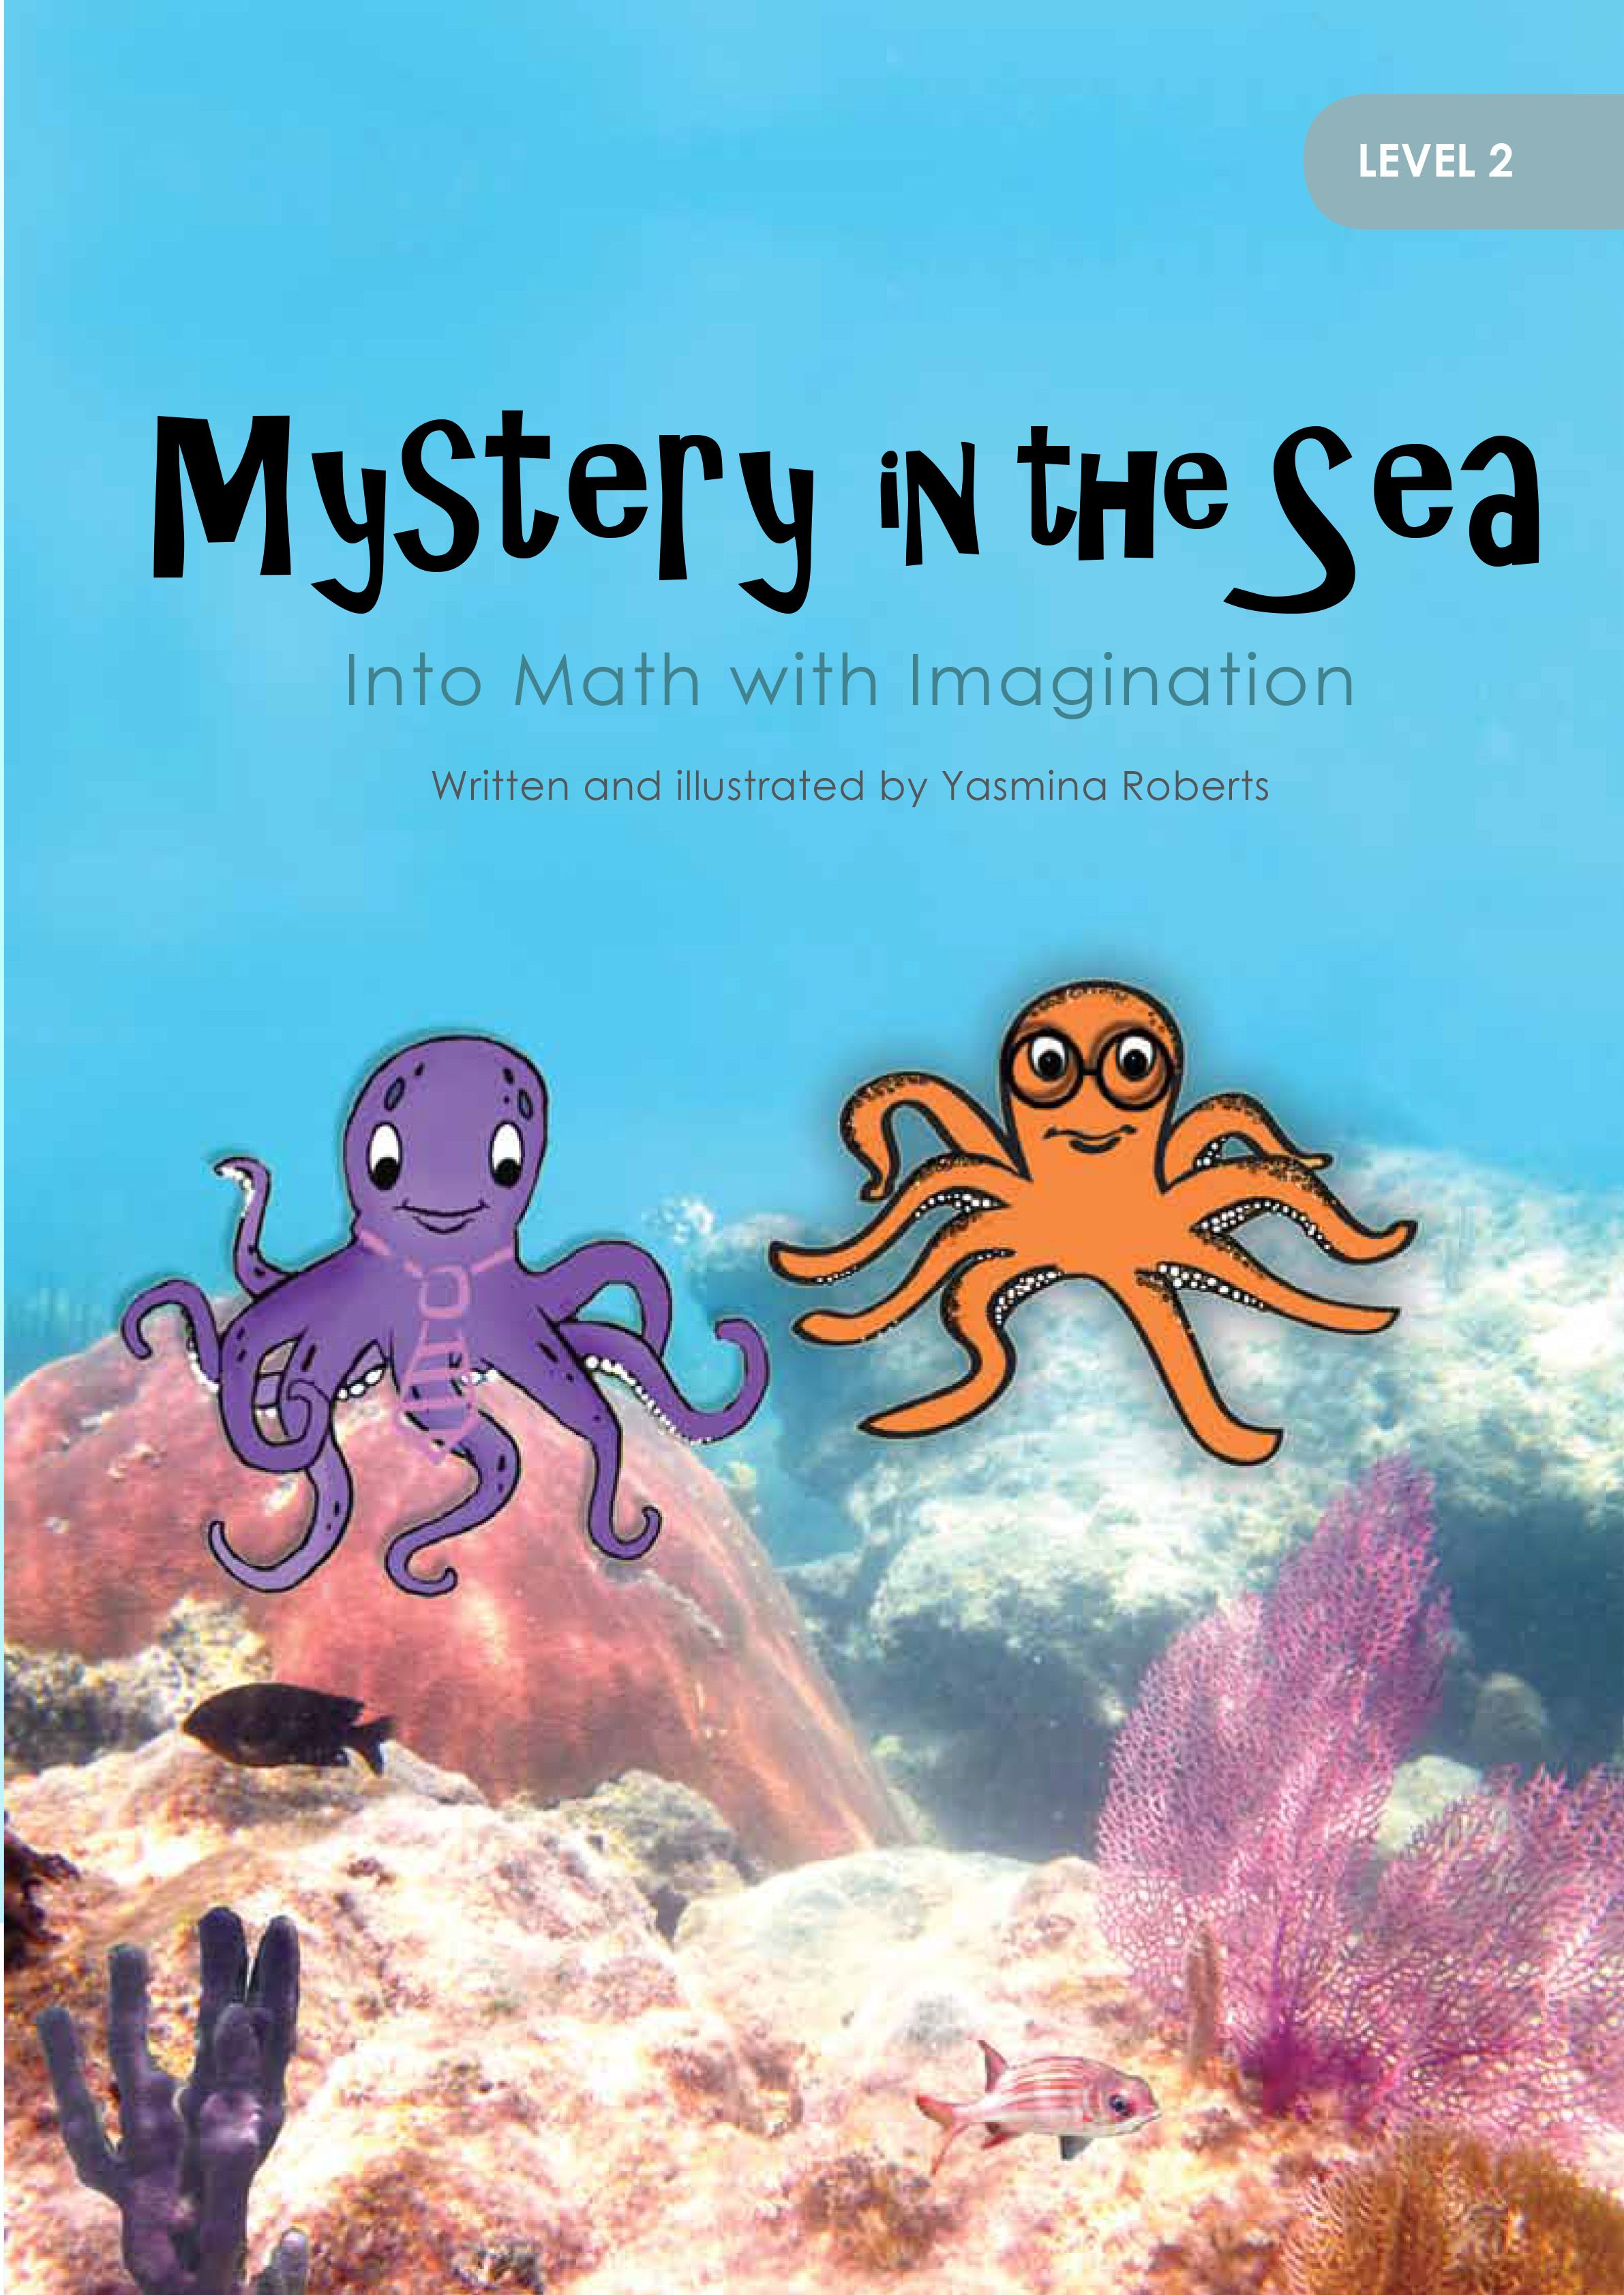 """Mystery in the Sea"""" is the second book of the series. It contains 35 ..."""